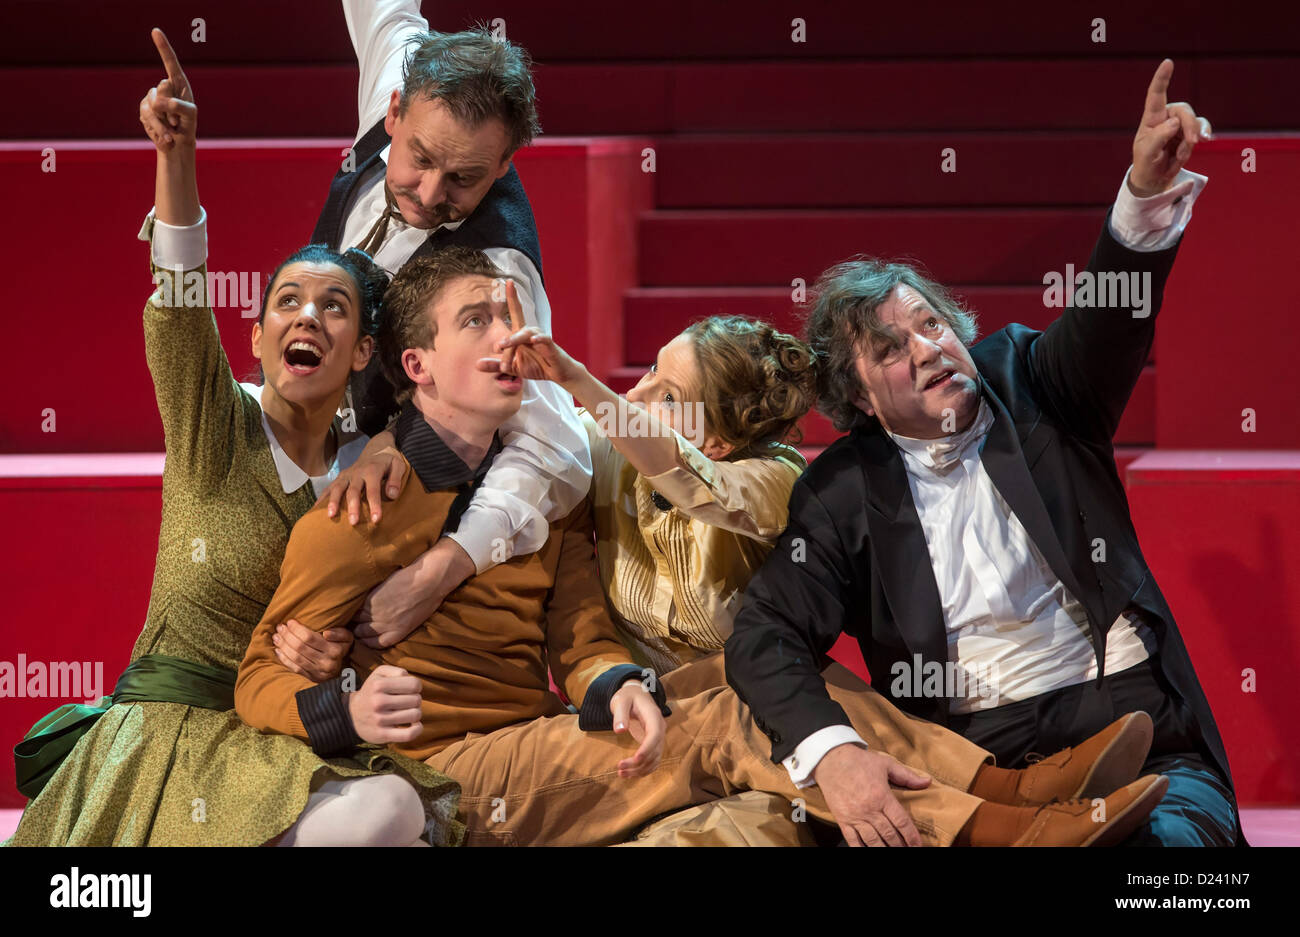 Actors rehearse for the play 'Wahnfried - Bilder einer Ehe' ('Wahnfried - pictures of a marriage') - Stock Image